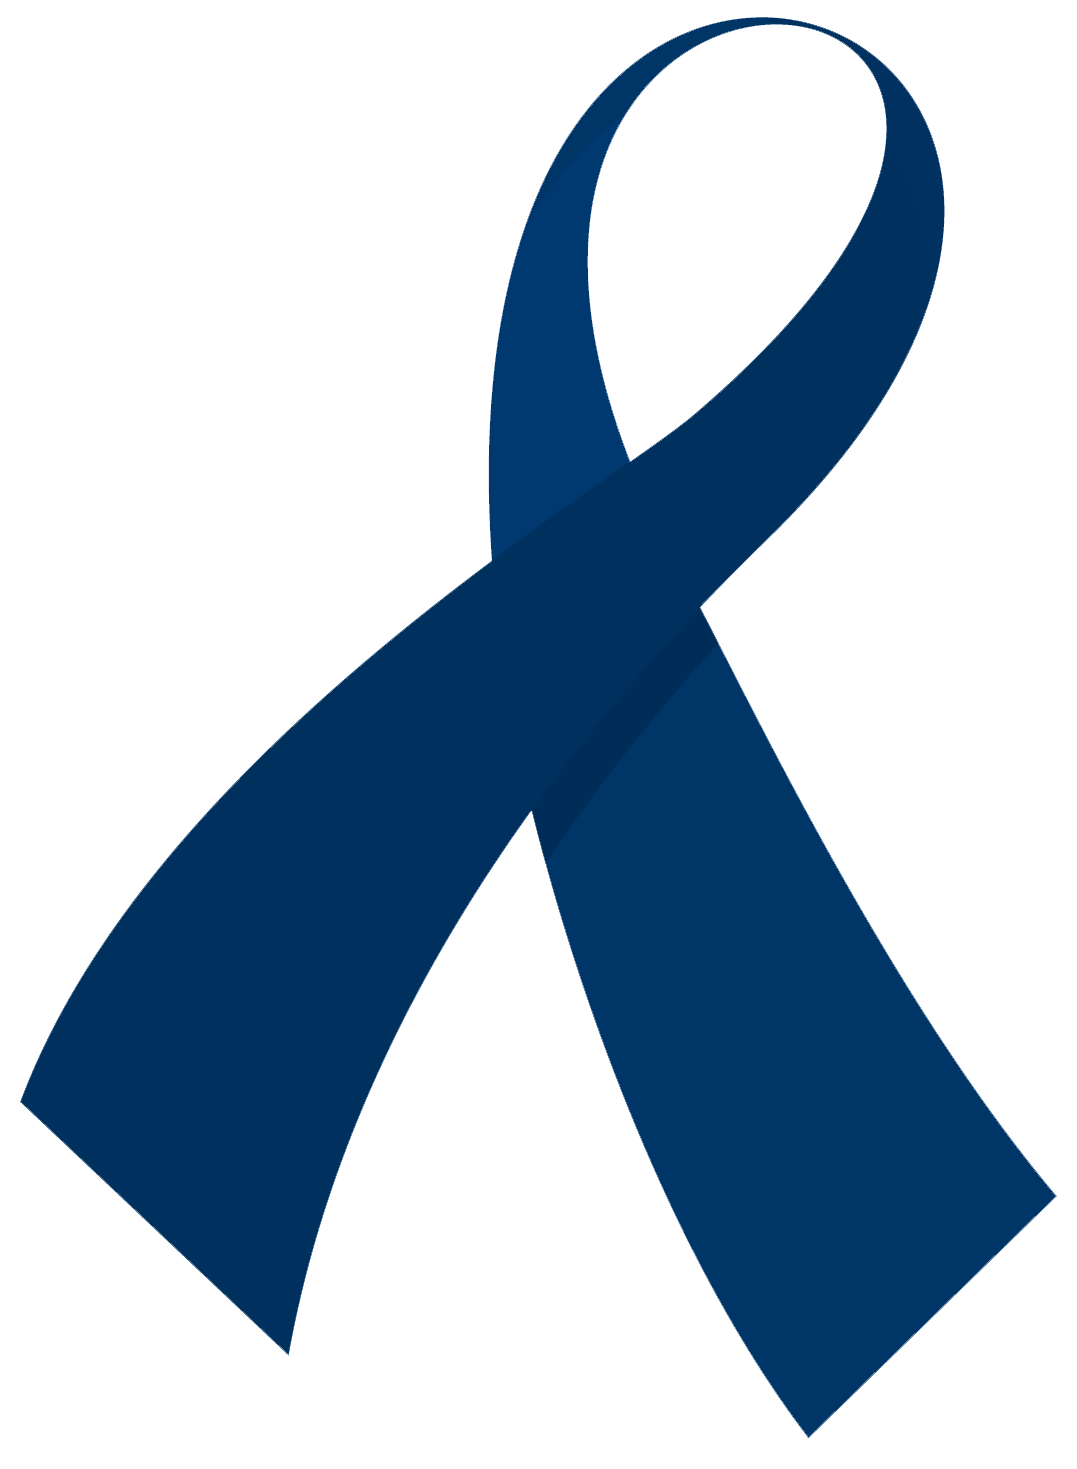 Logo ribbon clipart png navy black and white download Free Cancer Ribbon Clip Art - Cliparts.co black and white download